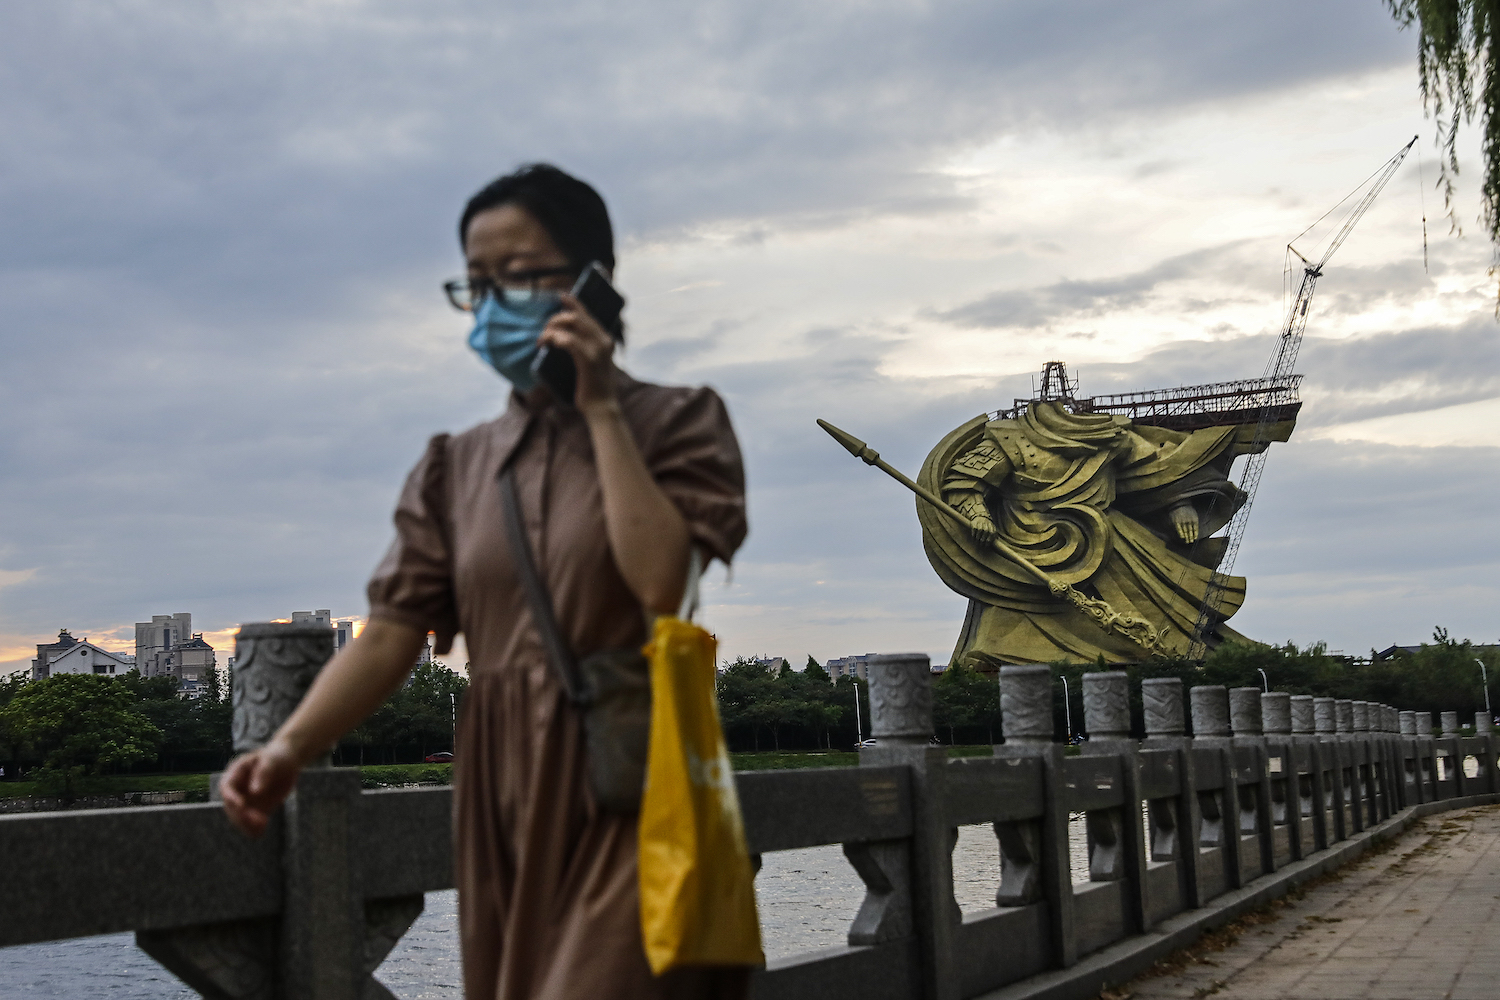 A woman walks by as workers dismantle the giant statue of Guan Yu in Jingzhou, China, on Sept. 6.